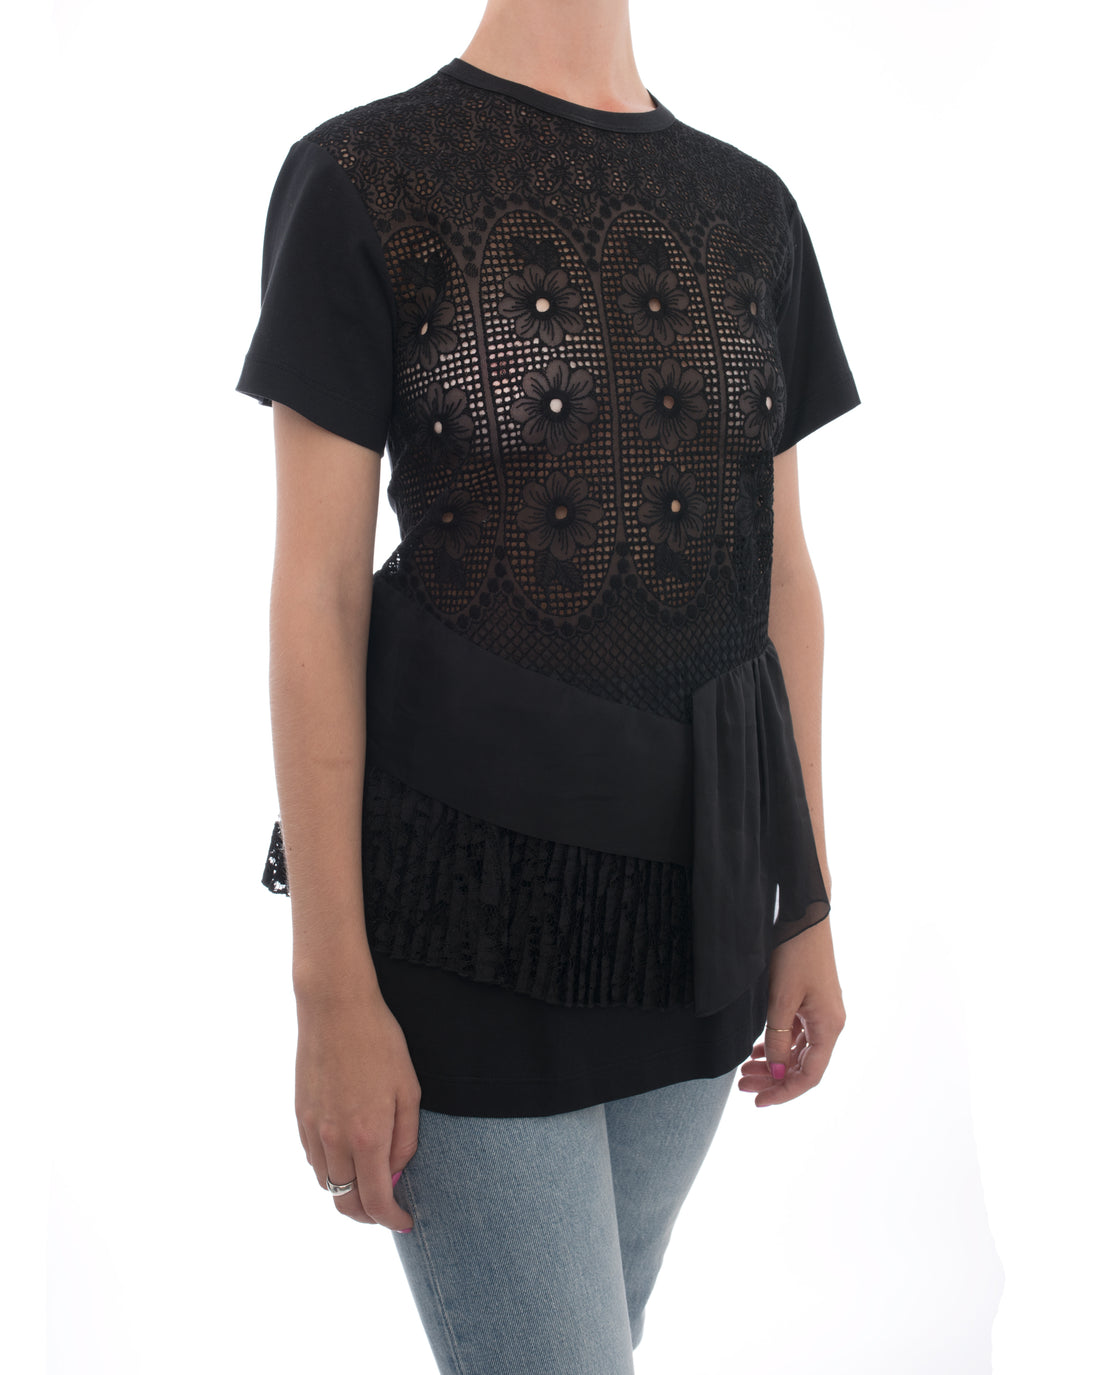 No. 21 Black T-Shirt with Broderie Anglaise Inset - 6